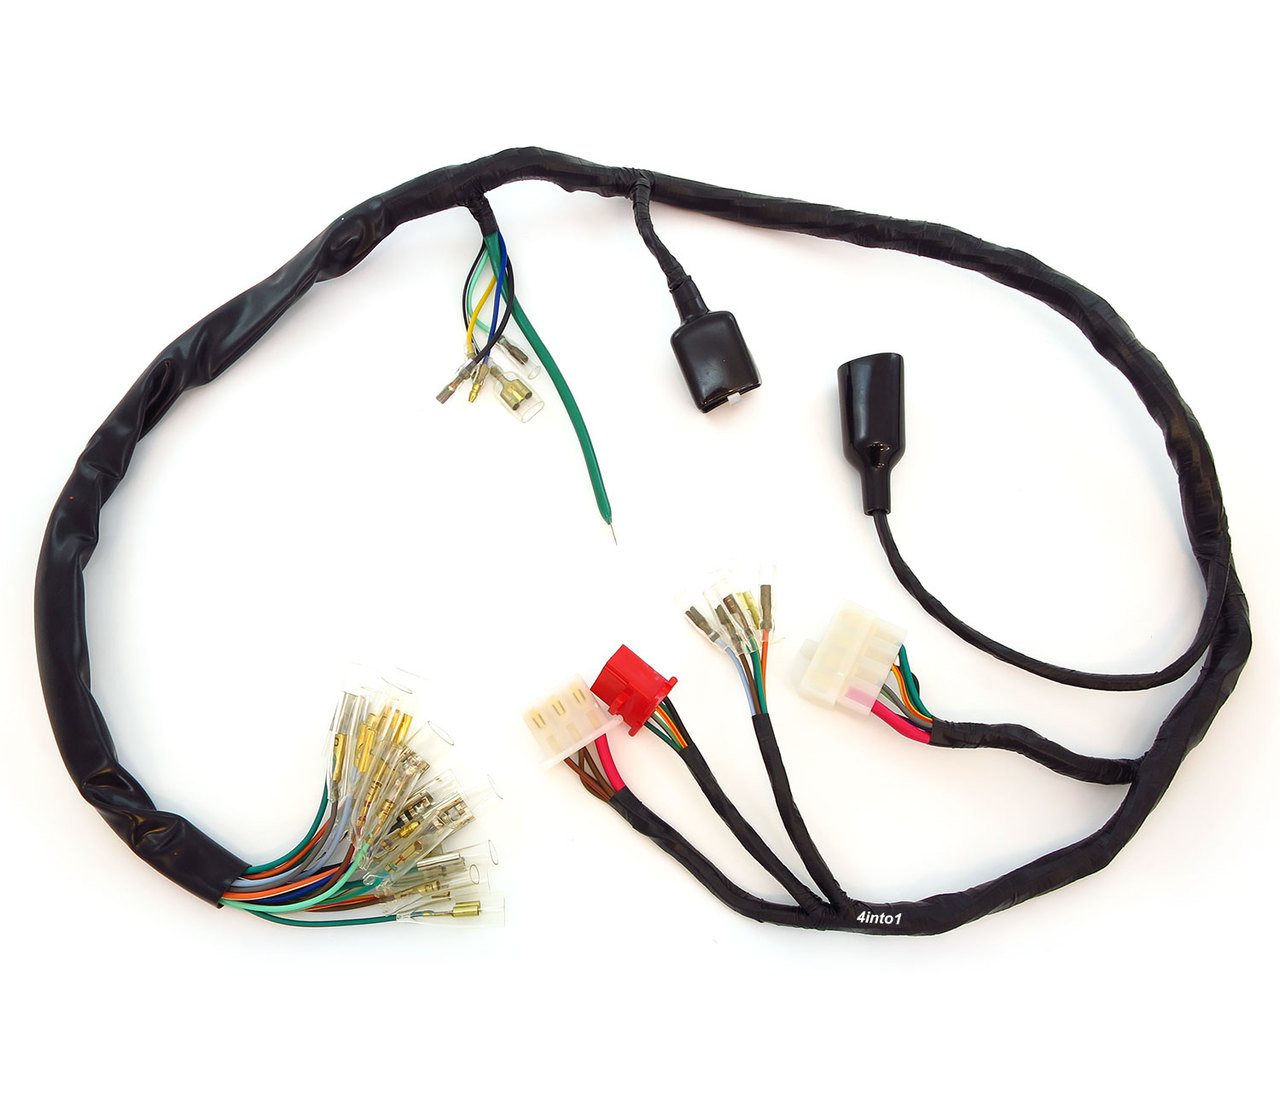 medium resolution of main wiring harness 32100 374 000 honda cb550k 1974 1975 honda wiring harness color code honda wiring harnesses